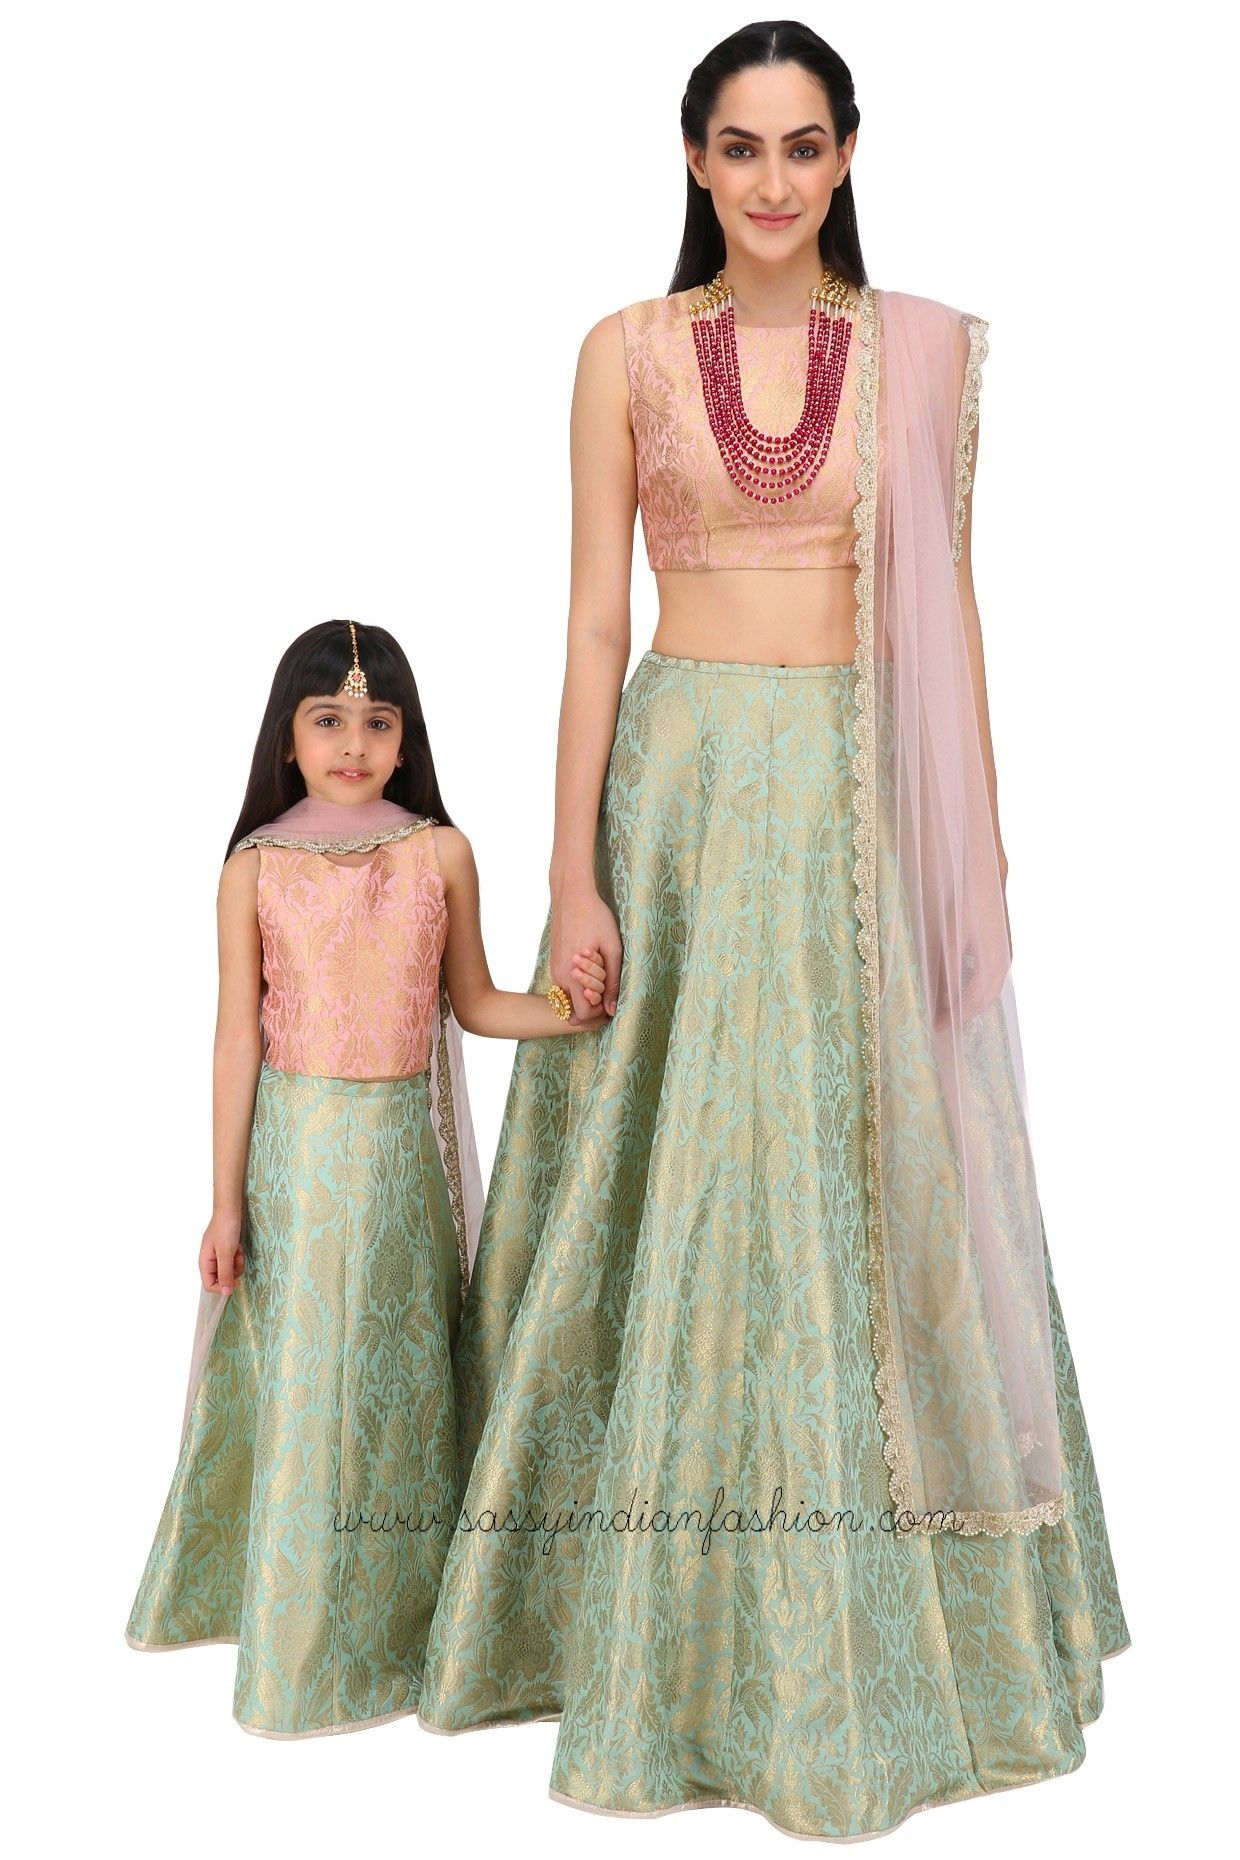 mothers dresses for weddings 9 Cool Mother Daughter Matching Outfit Ideas